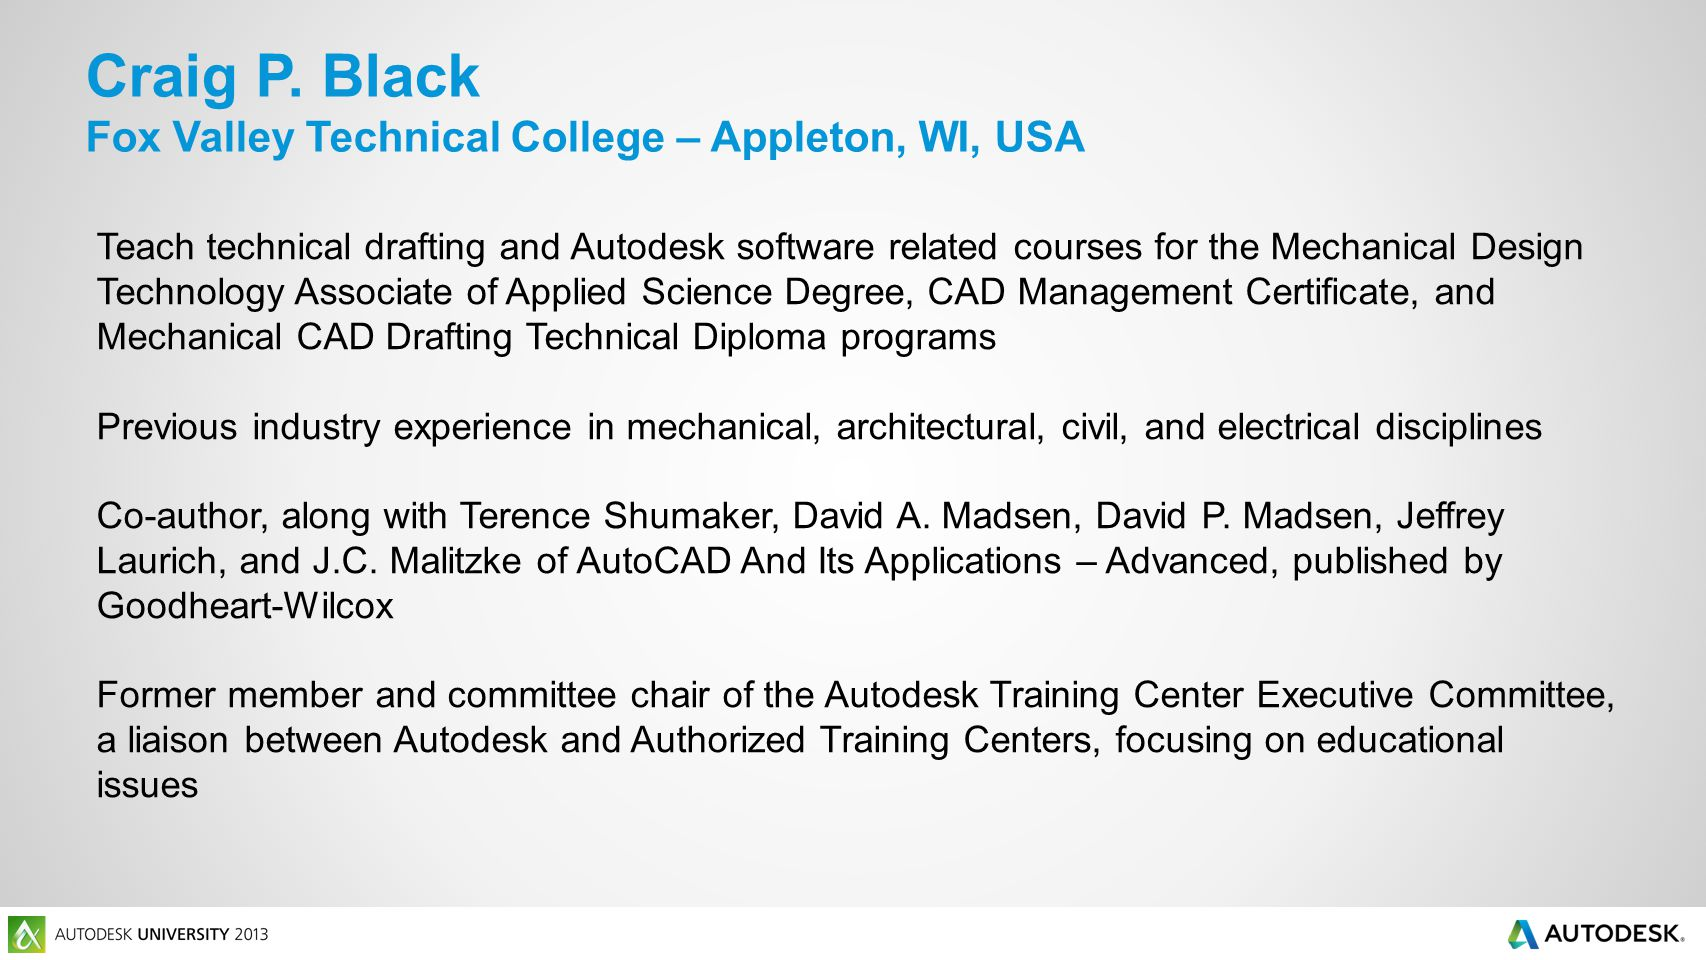 Teach technical drafting and Autodesk software related courses for the Mechanical Design Technology Associate of Applied Science Degree, CAD Management Certificate, and Mechanical CAD Drafting Technical Diploma programs Previous industry experience in mechanical, architectural, civil, and electrical disciplines Co-author, along with Terence Shumaker, David A.